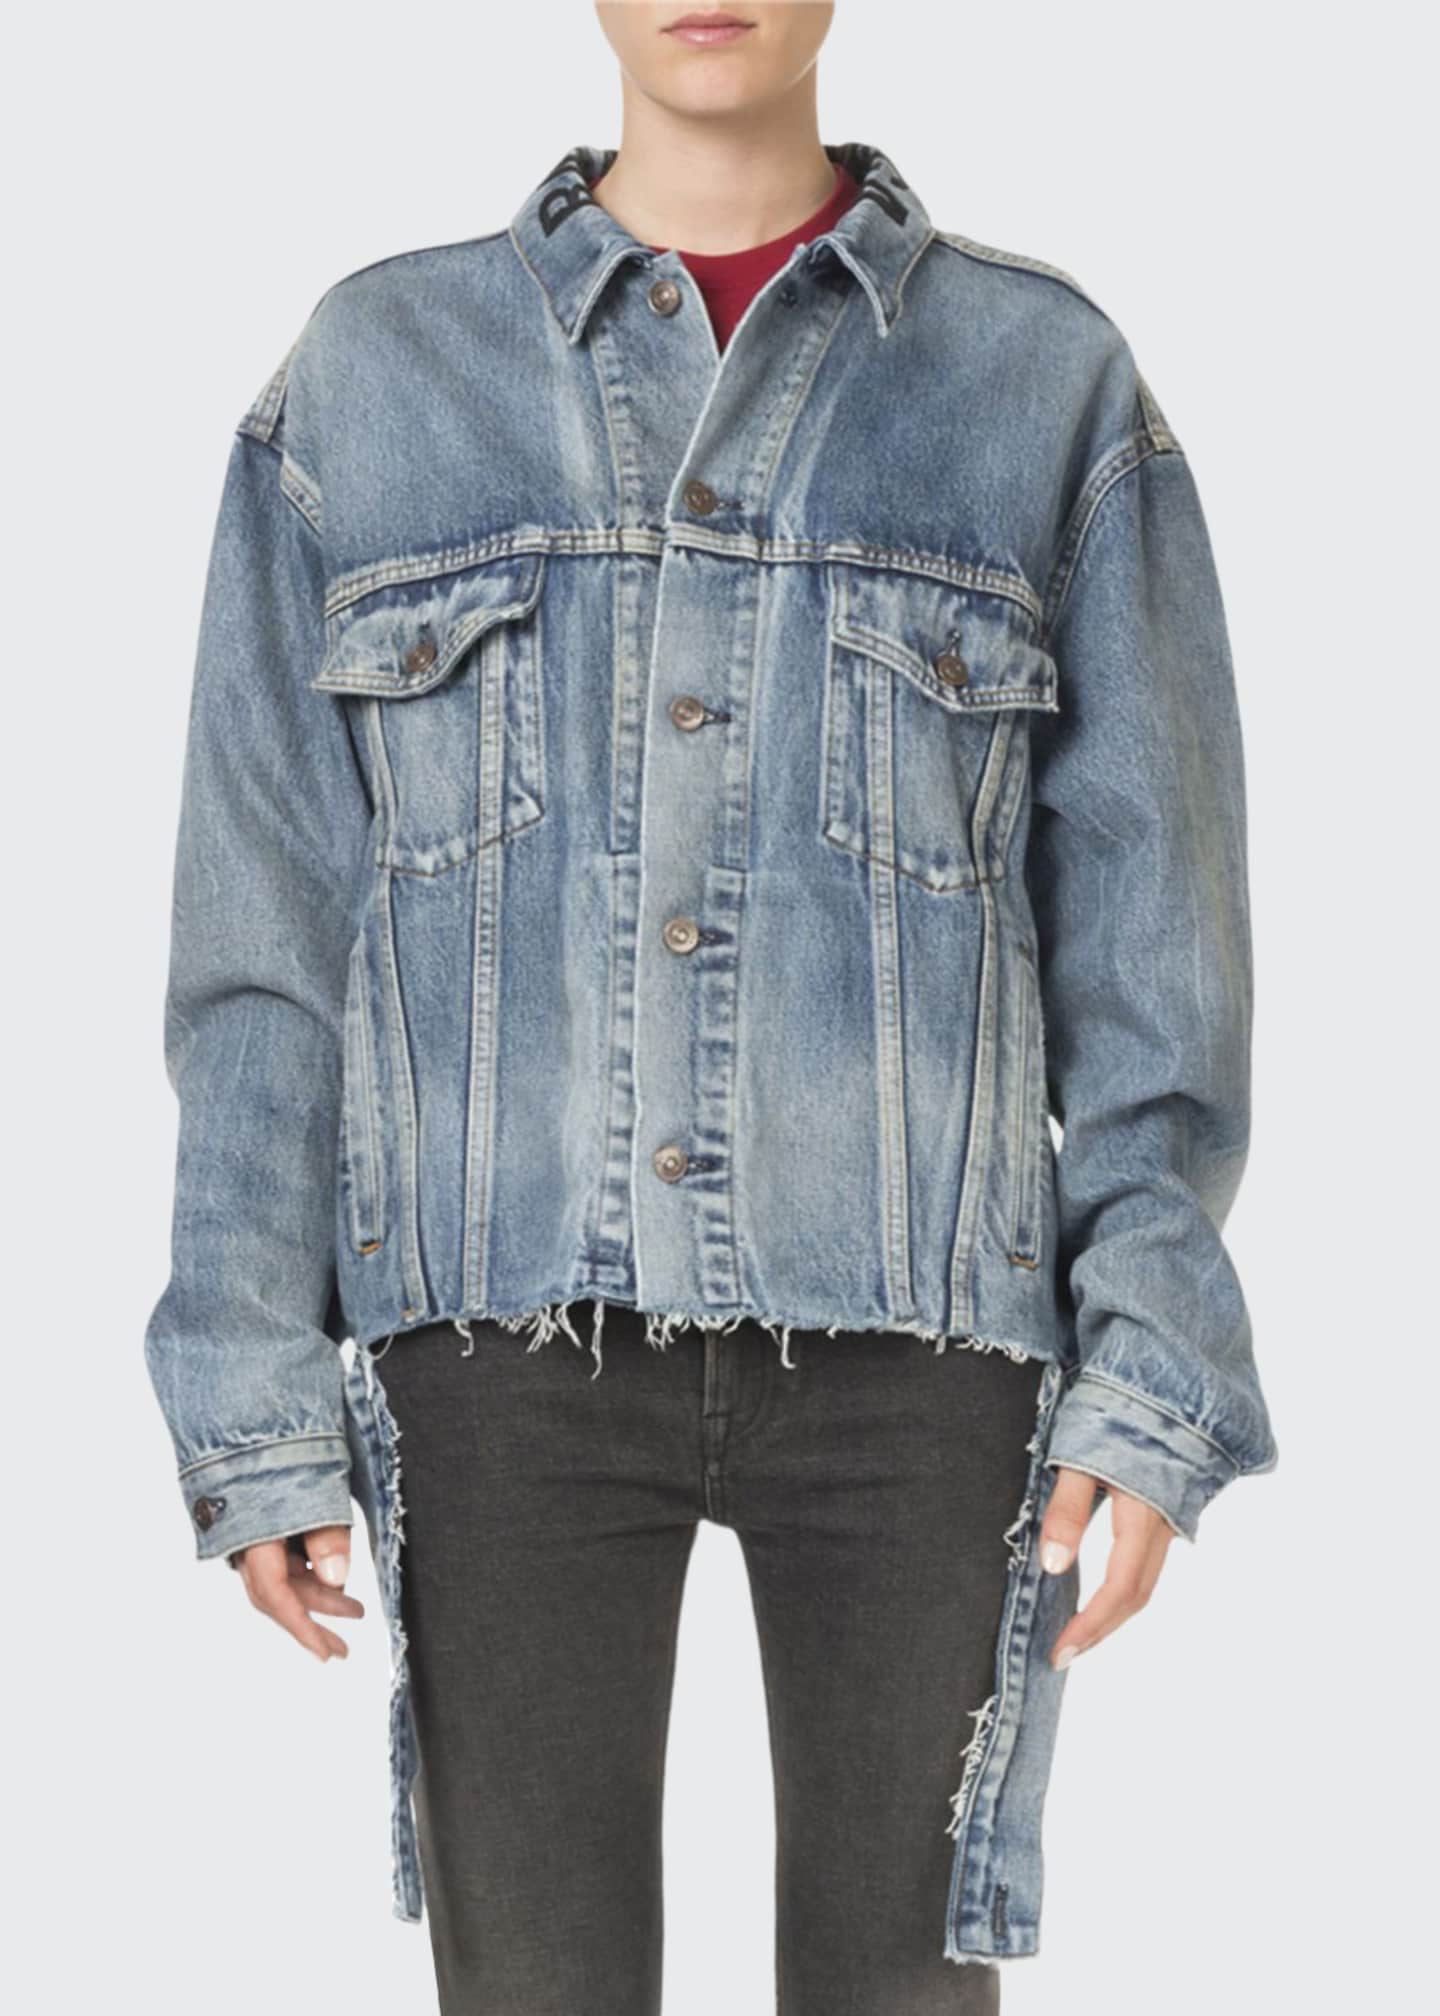 Balenciaga Oversized Vintage Cut-Waistband Denim Jacket